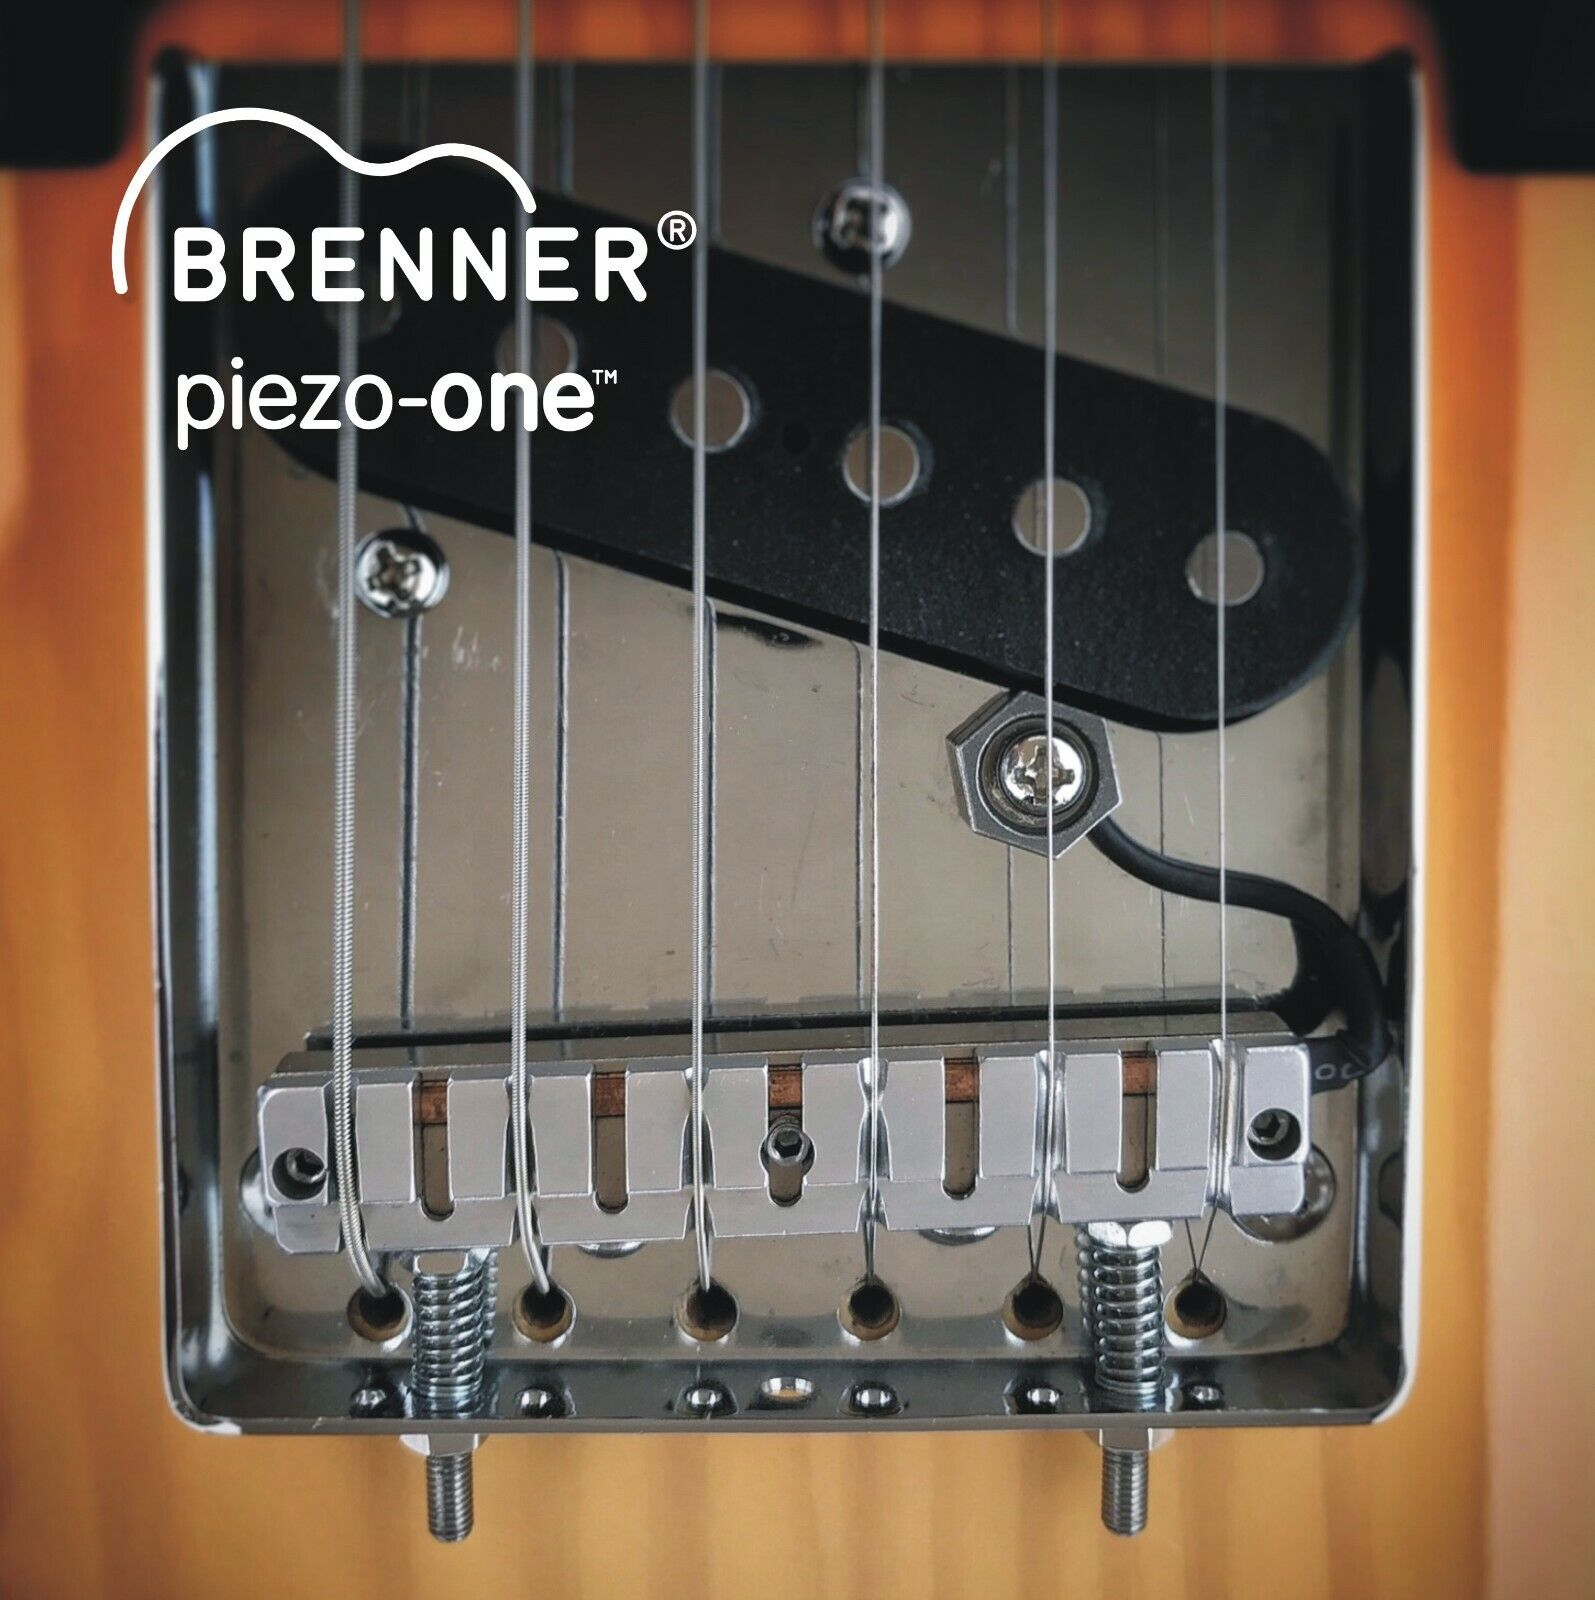 Brenner piezo-one saddle for Tele no-modification conversion to hybrid guitar